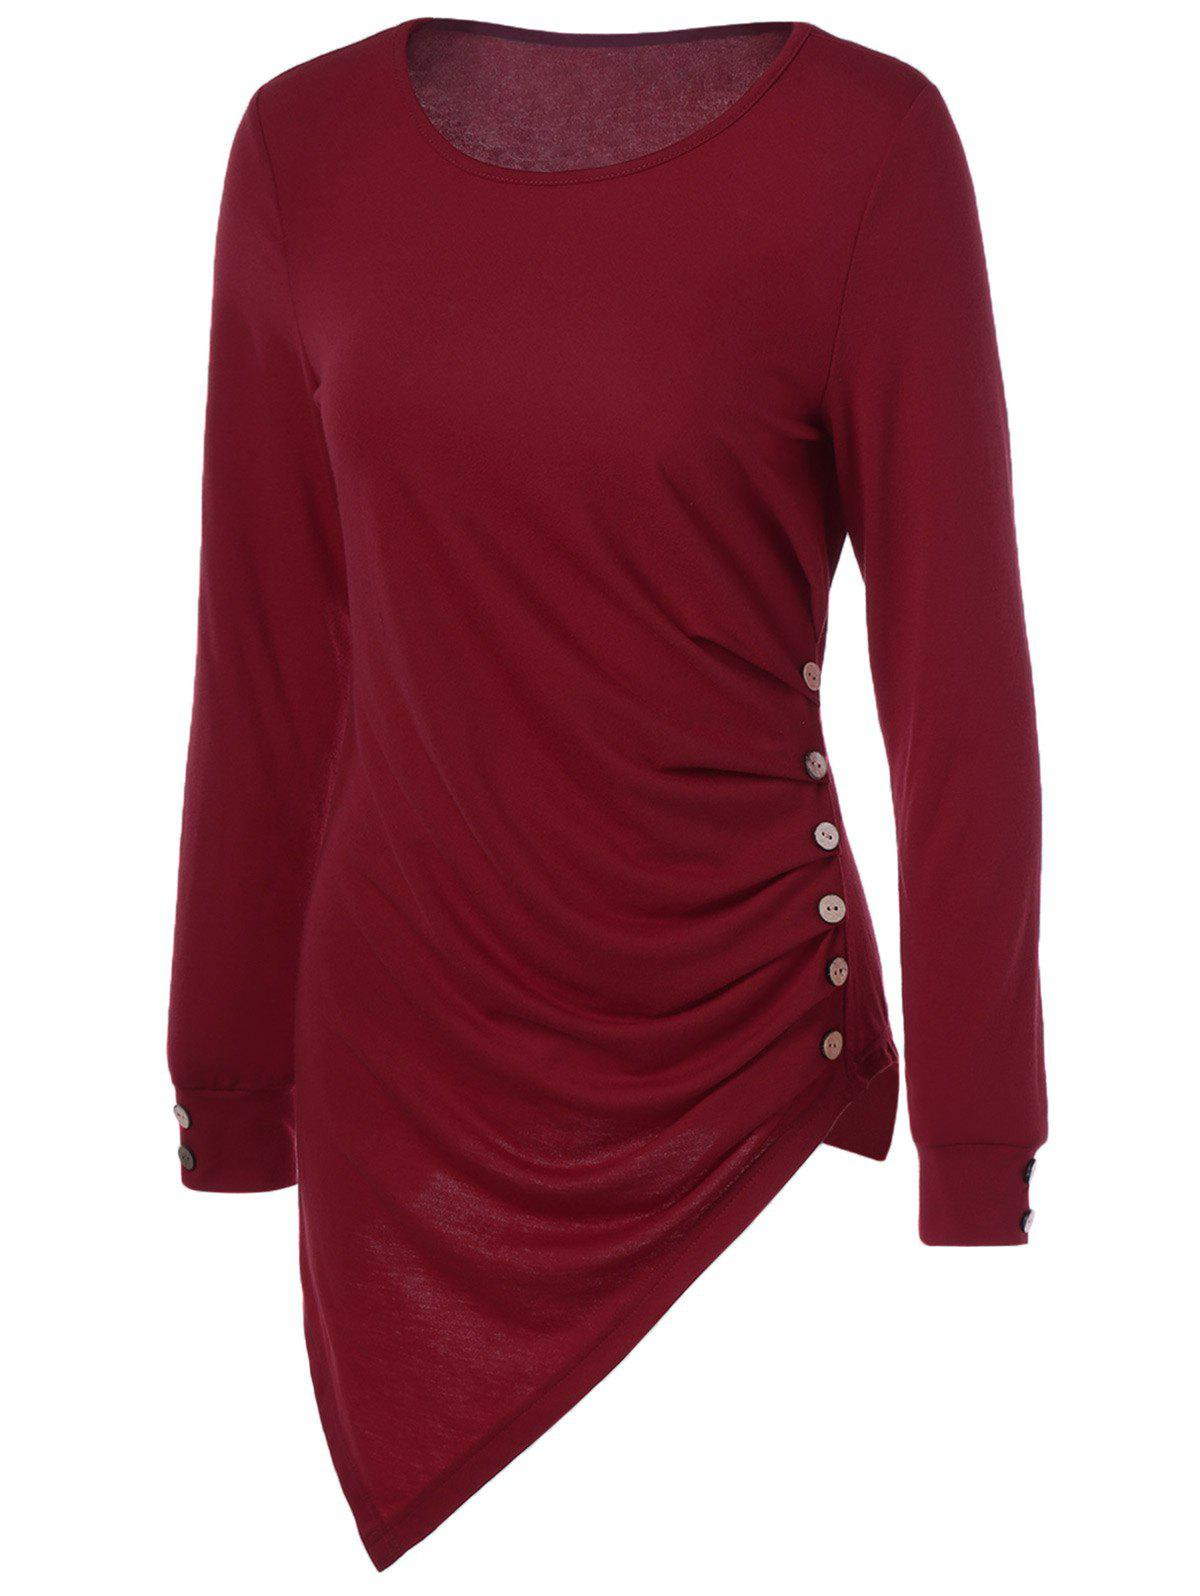 Asymmetrical Long Sleeve TeeWomen<br><br><br>Size: L<br>Color: WINE RED